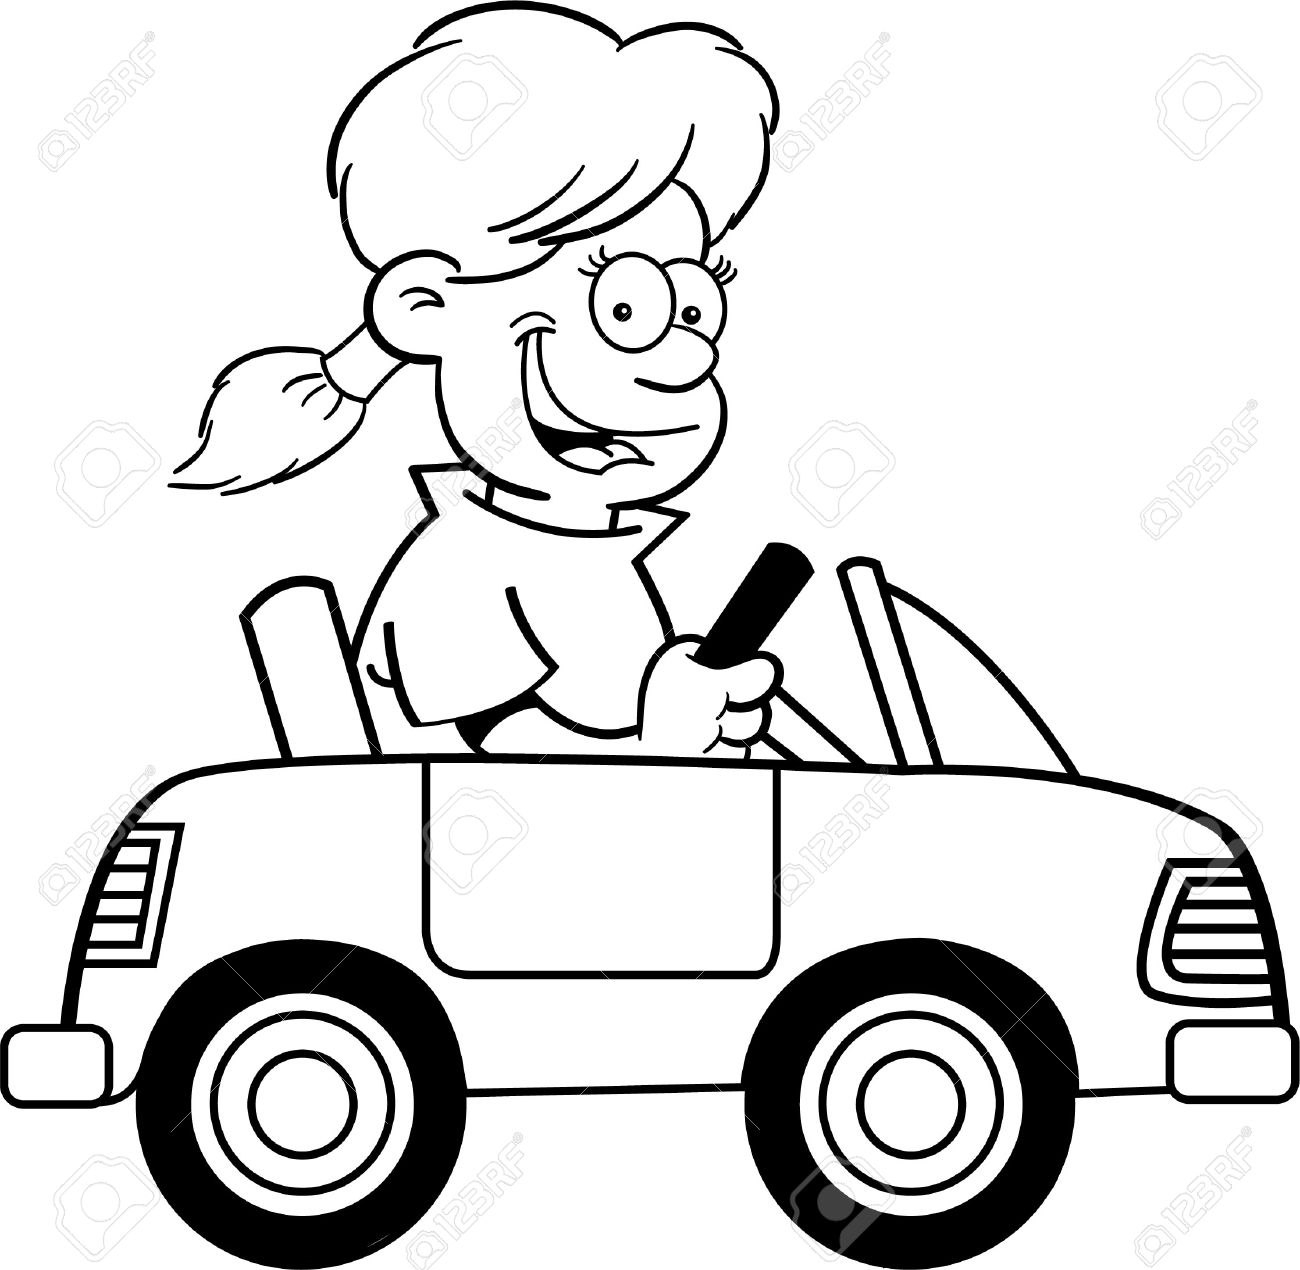 Drive clipart black. Driving car and white